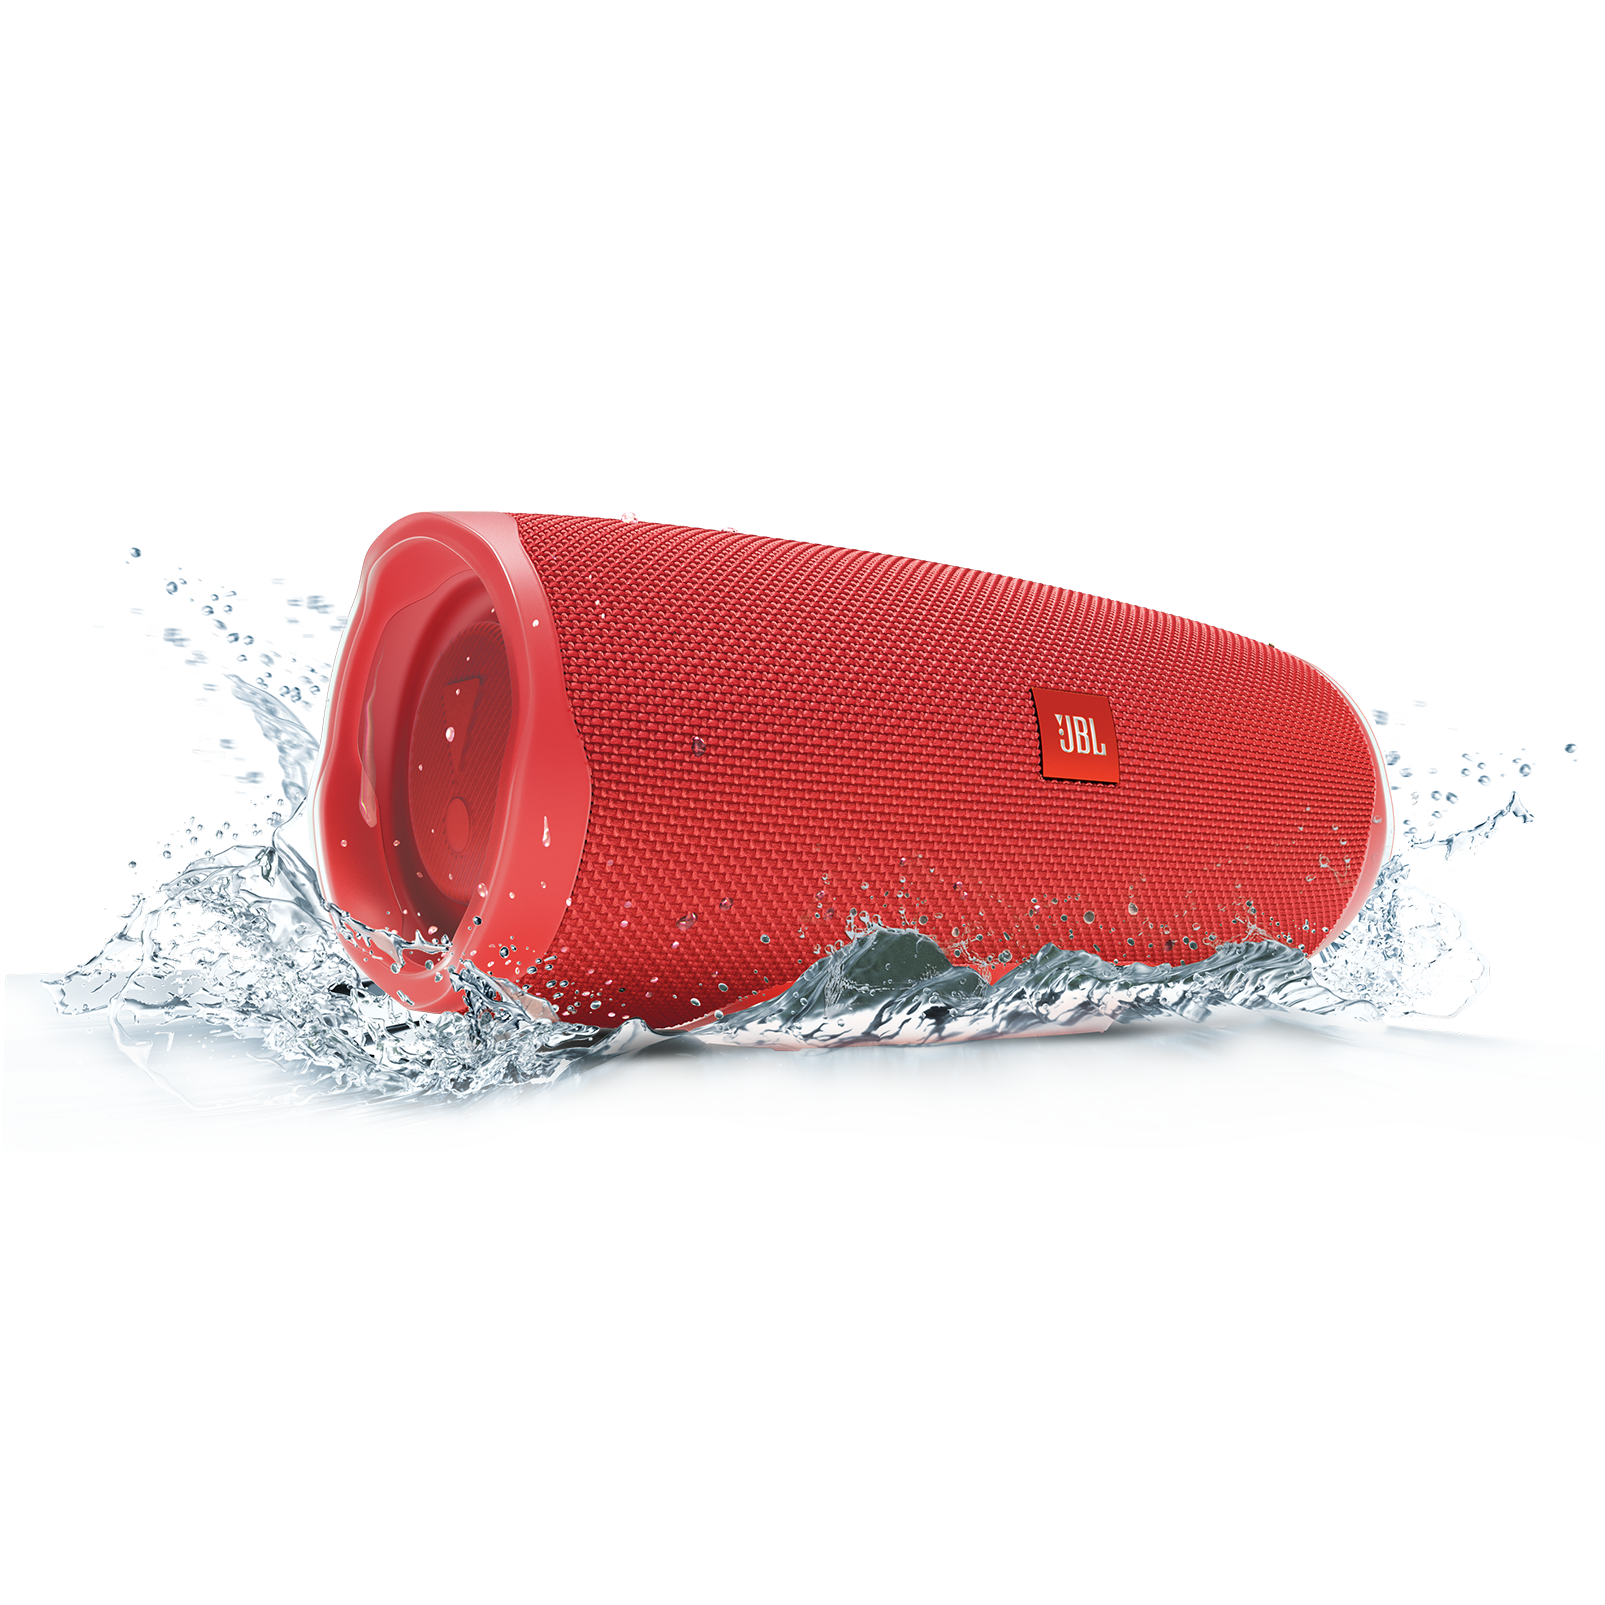 JBL Charge 4 - Red - Portable Bluetooth speaker - Detailshot 5